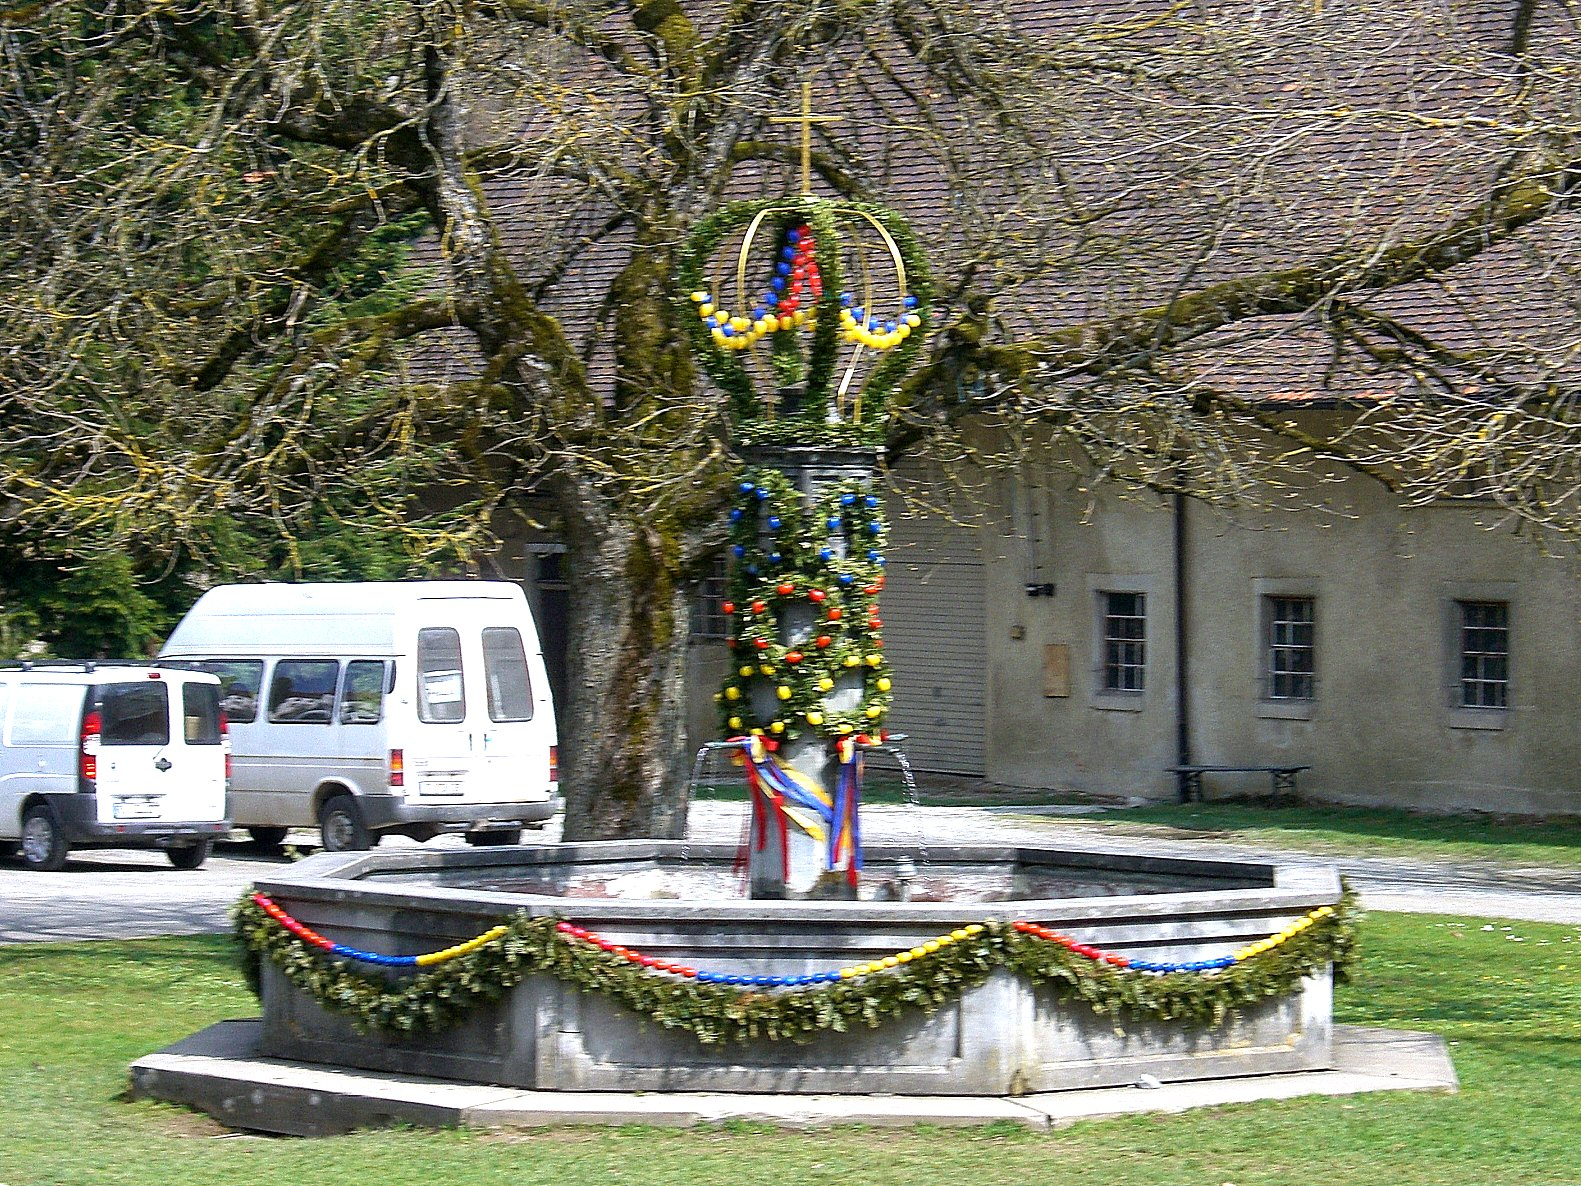 Osterbrunnen (Easter well) in Wolfegg, Germany